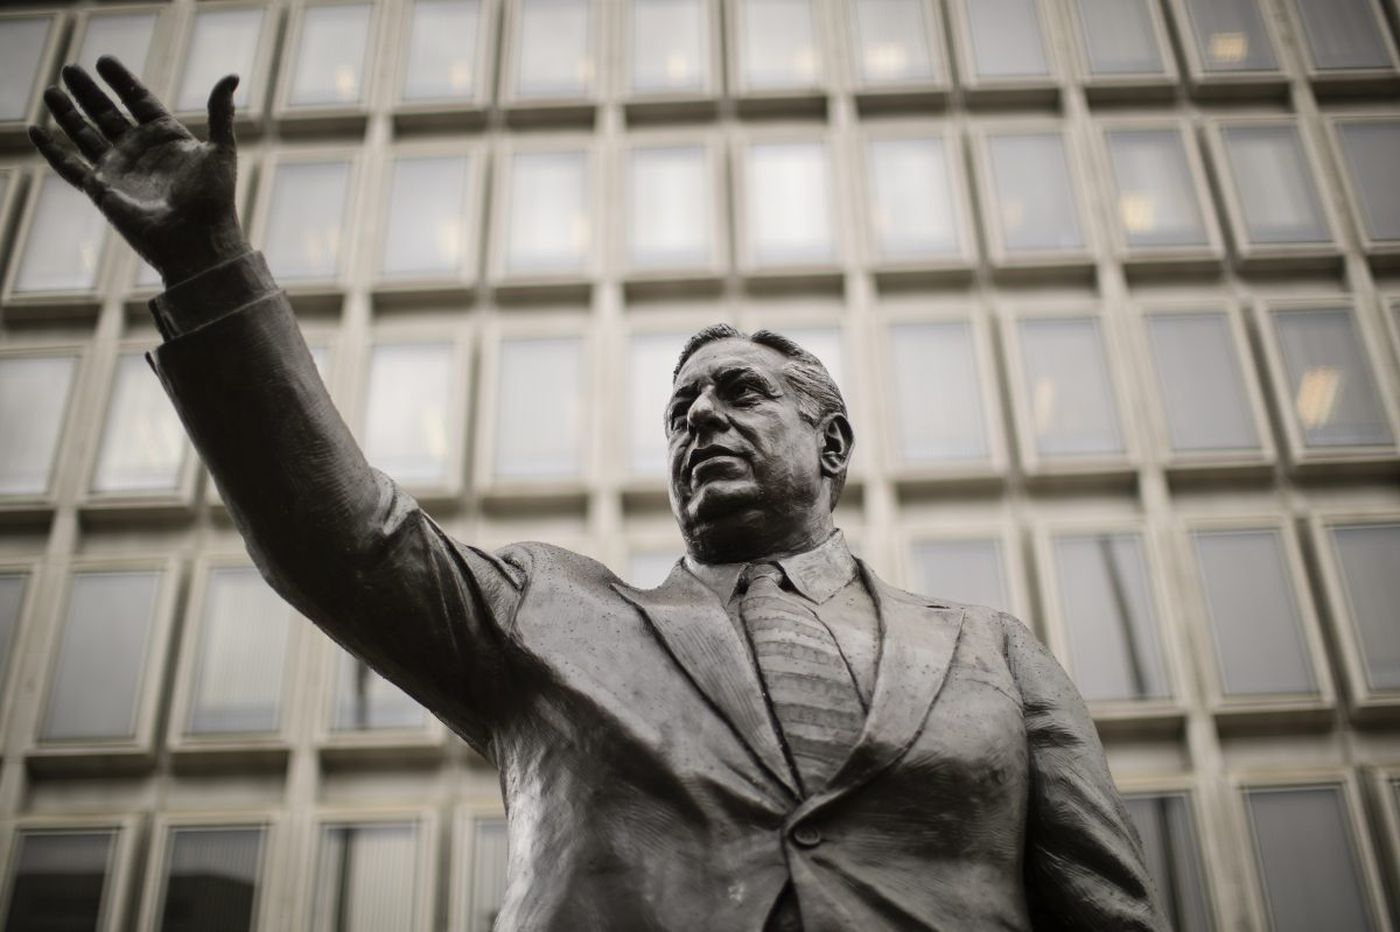 Kenney says Art Commission will make the call on Rizzo statue